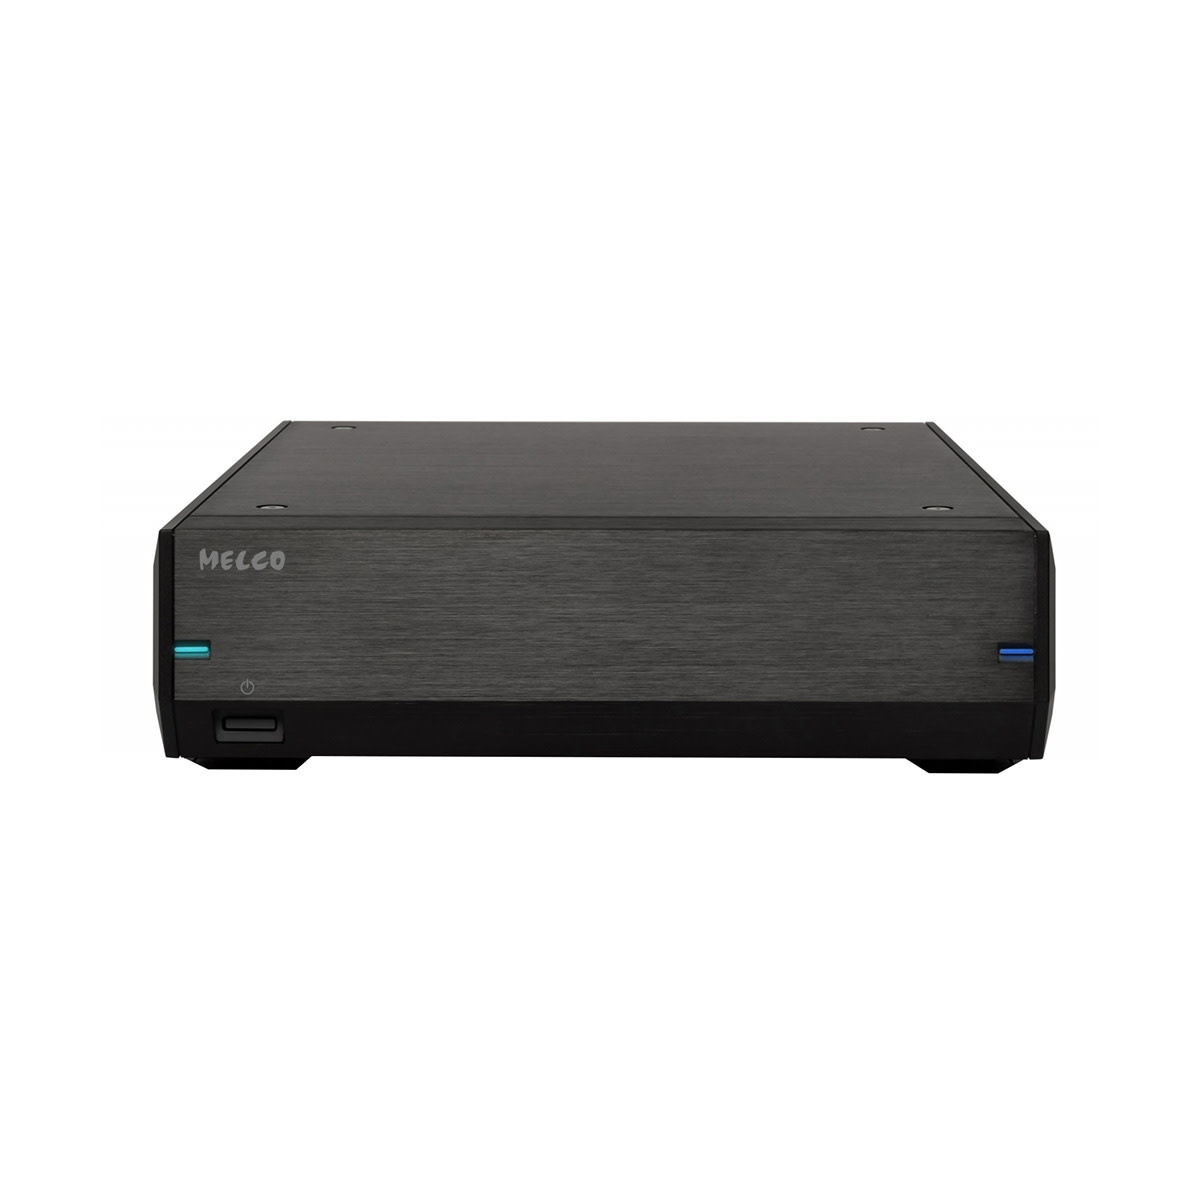 Melco E100 - H30 Expansion Hard Disk Drive